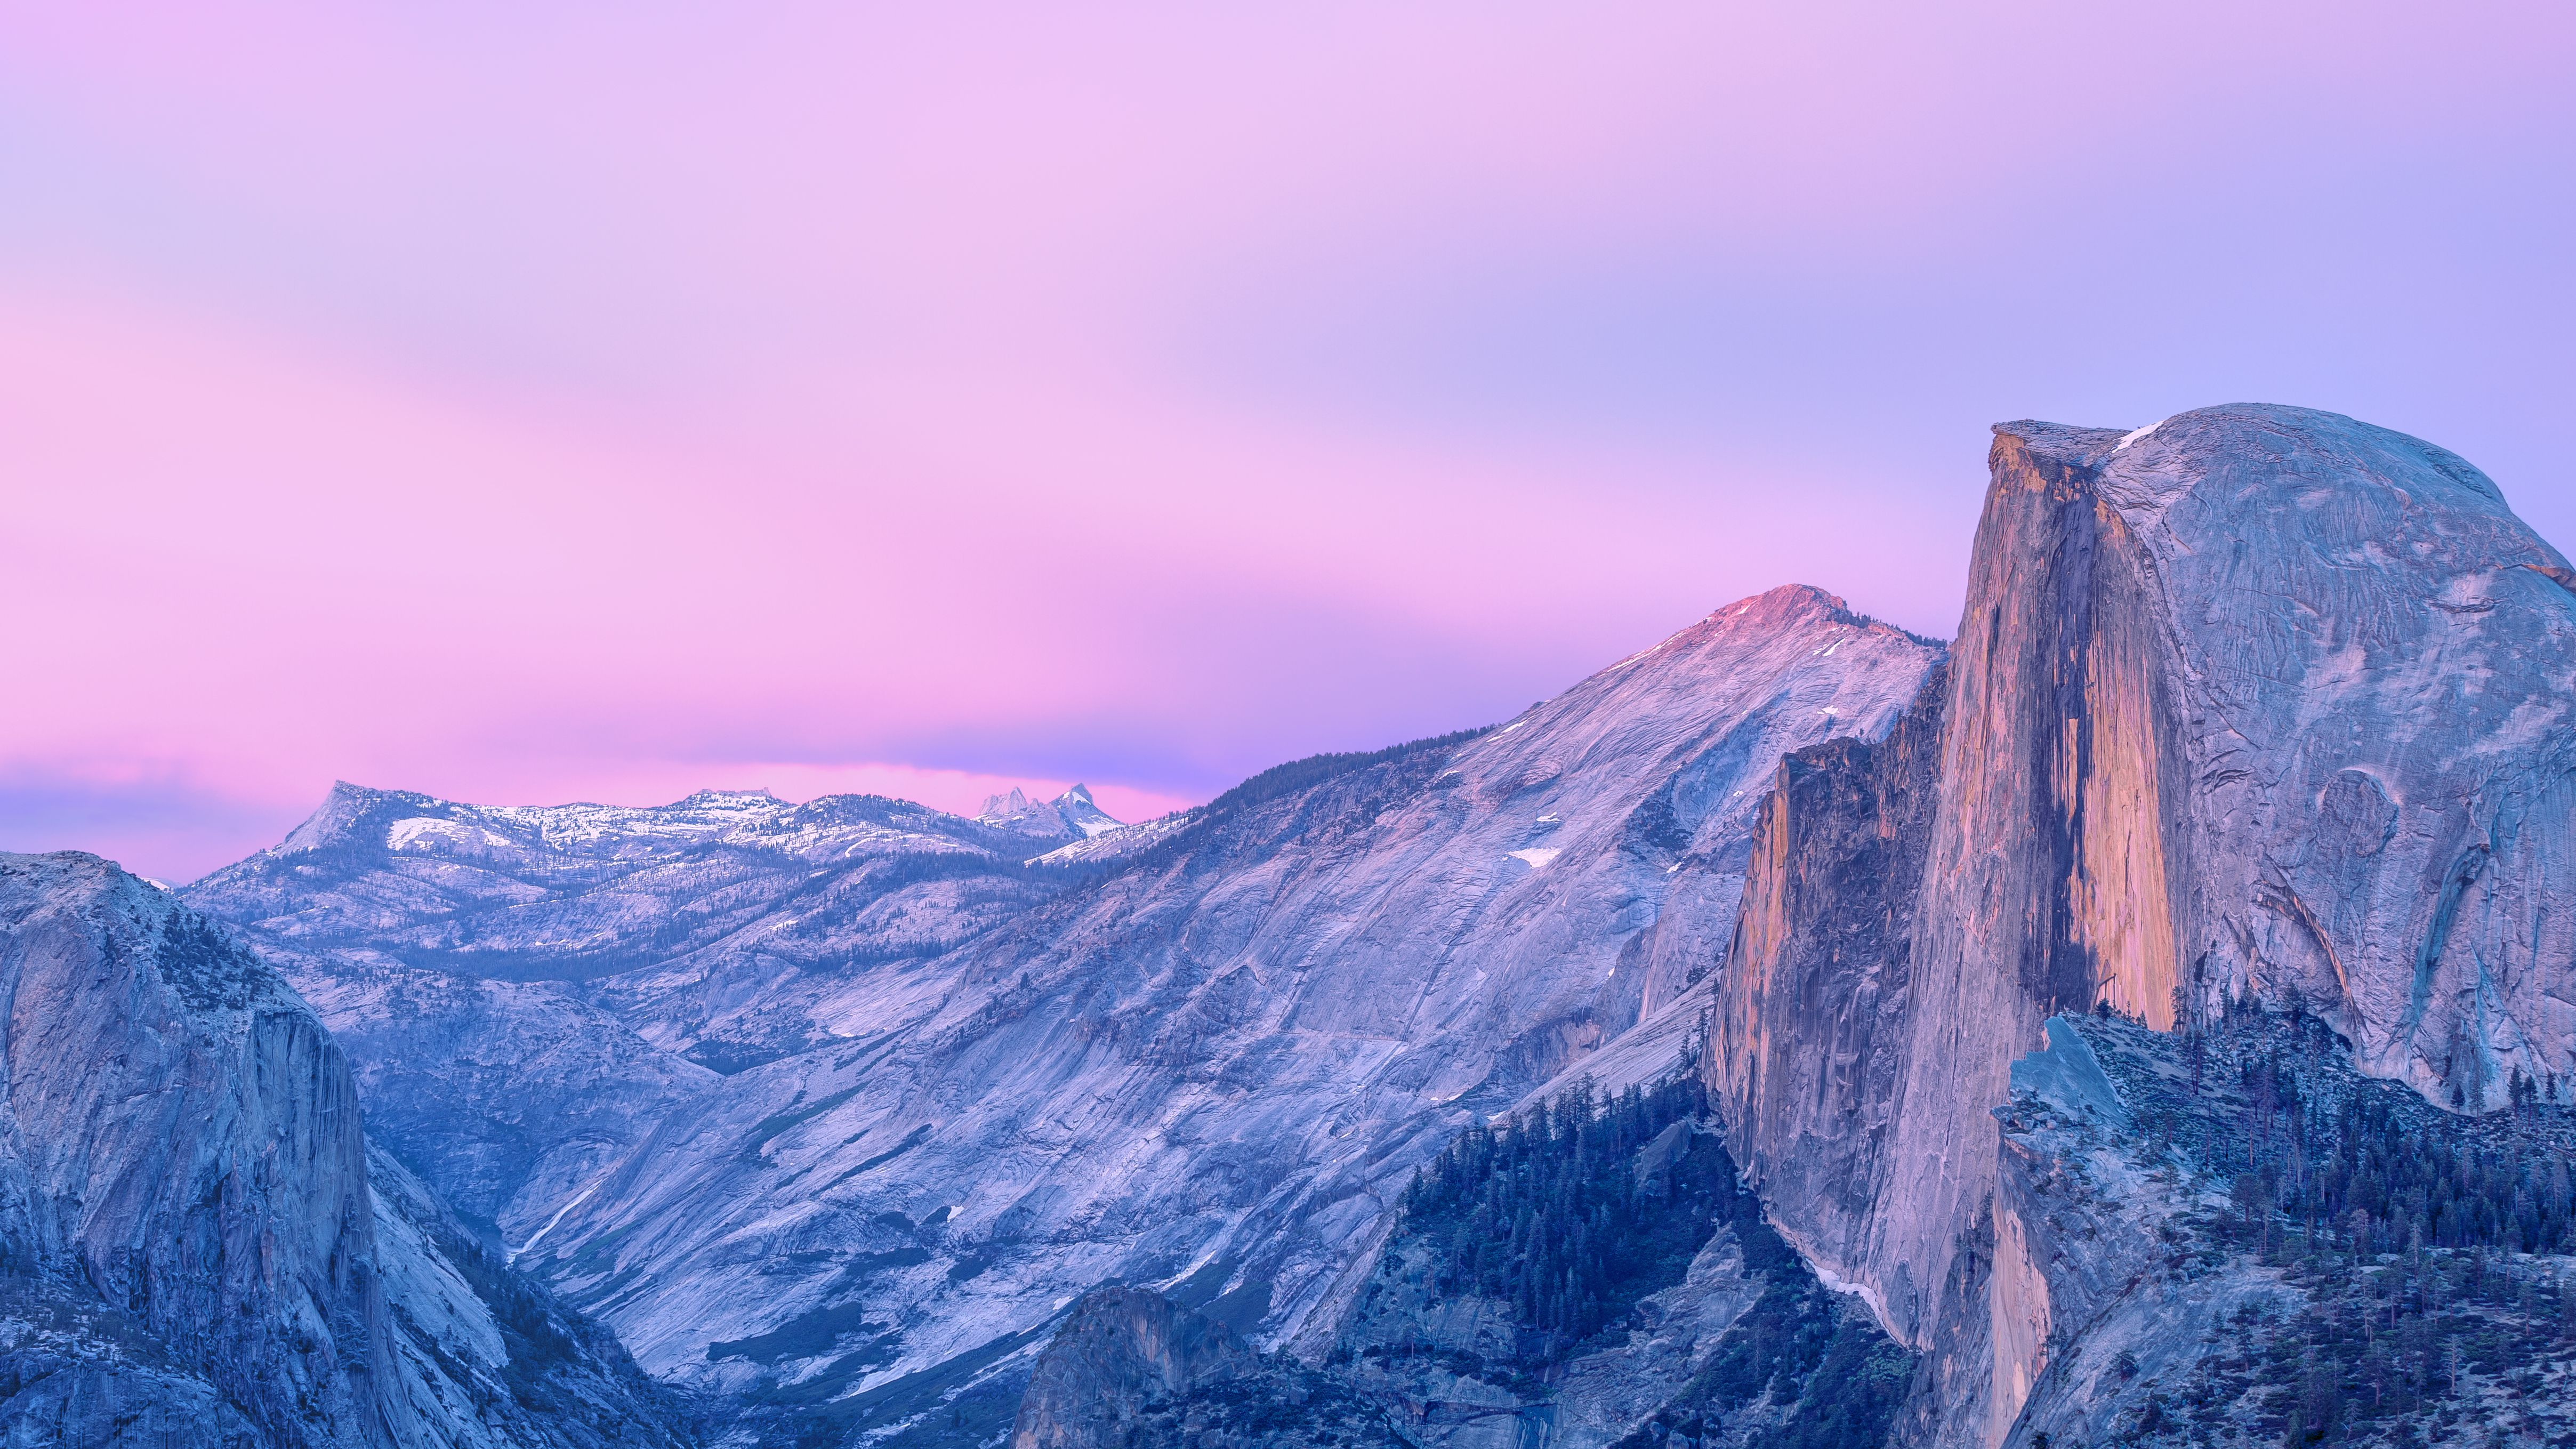 Download OS X Yosemite wallpapers